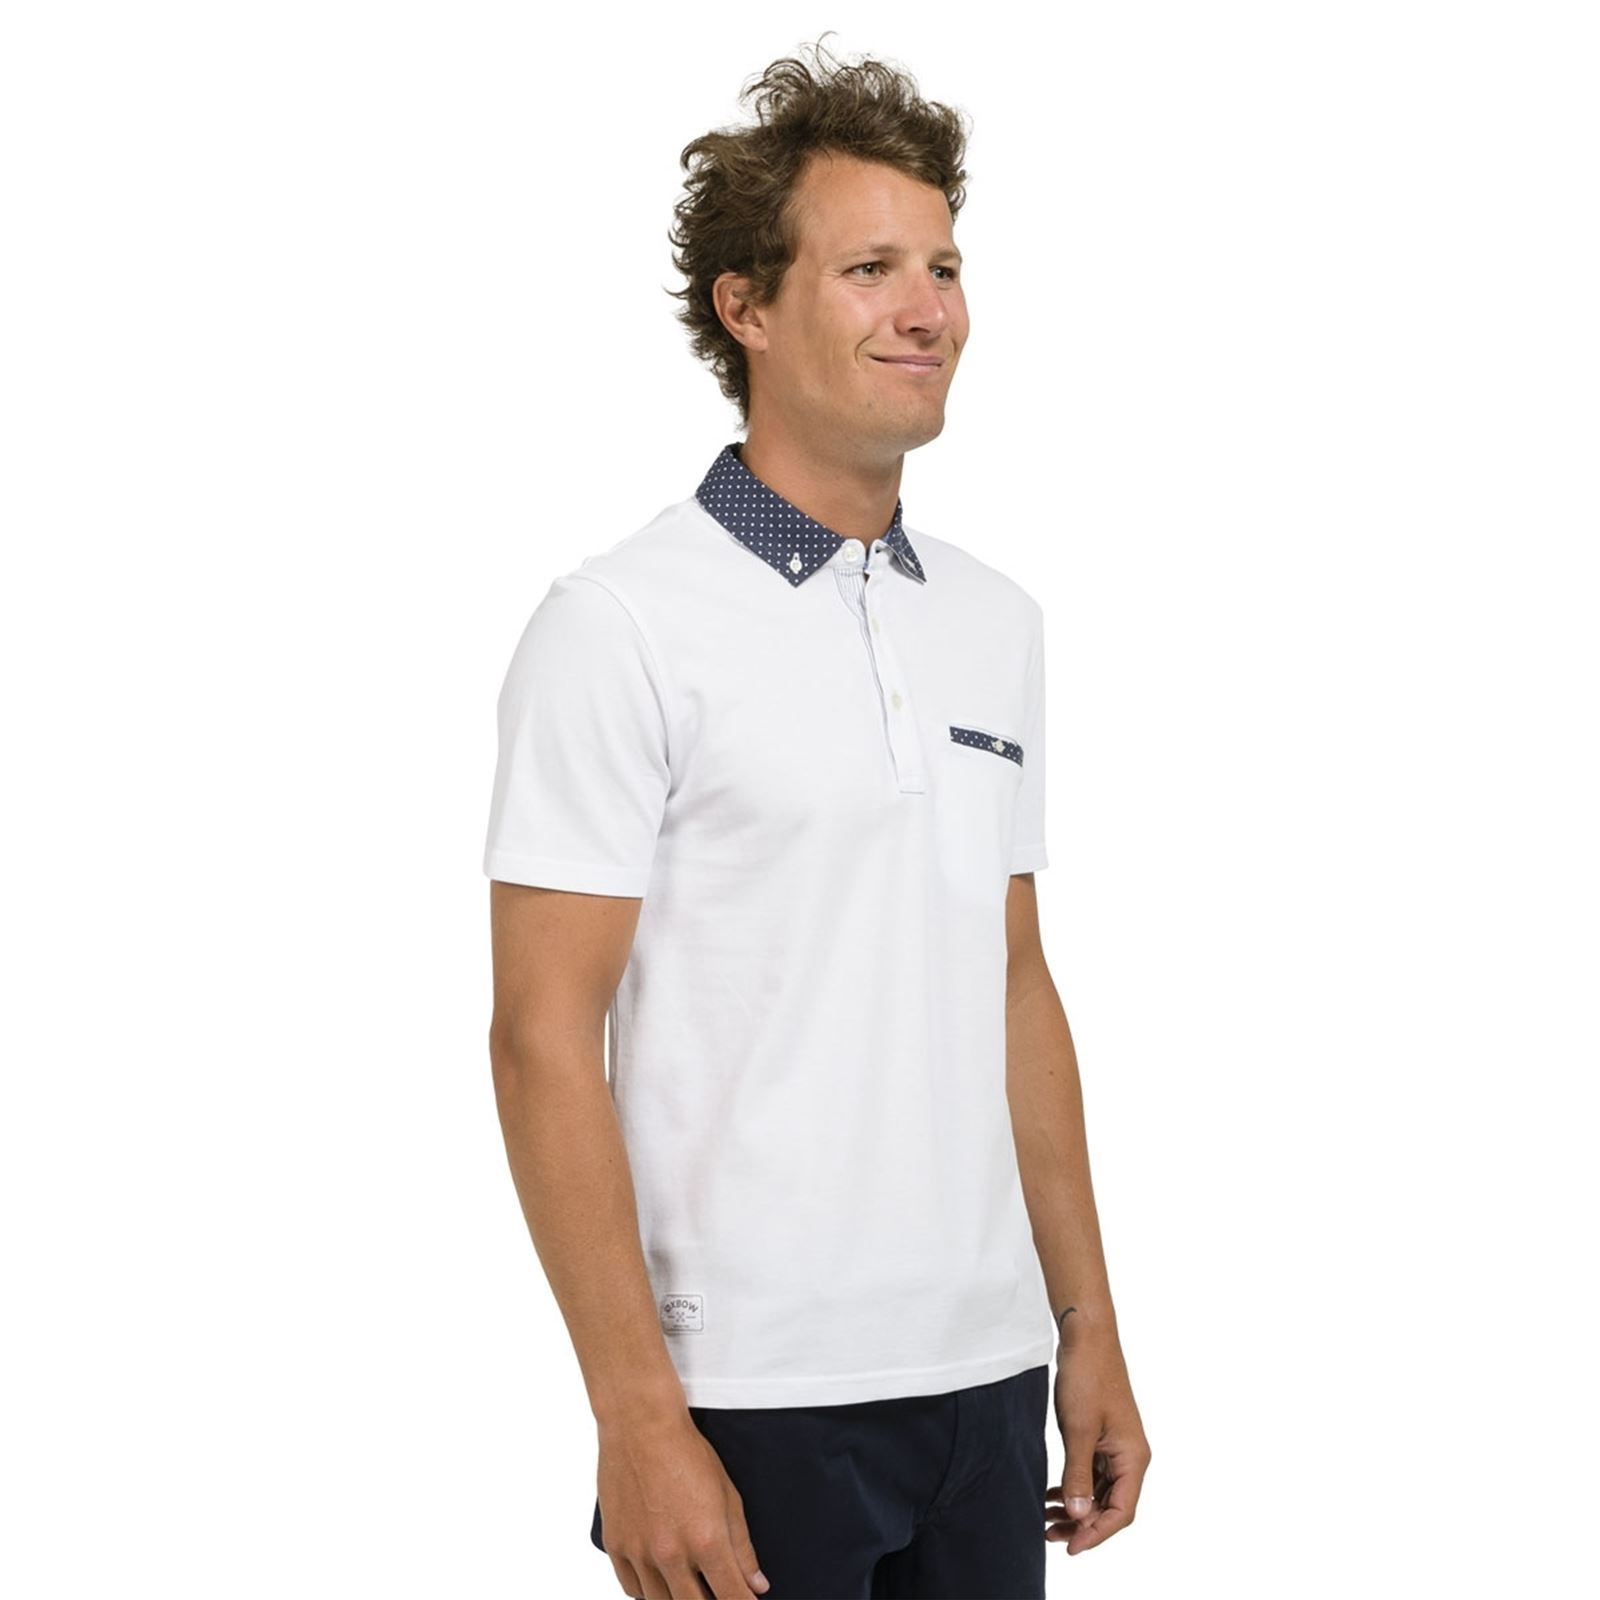 Manches Courtes Homme NortrePolo Blanc Oxbow V 34A5jqRLcS